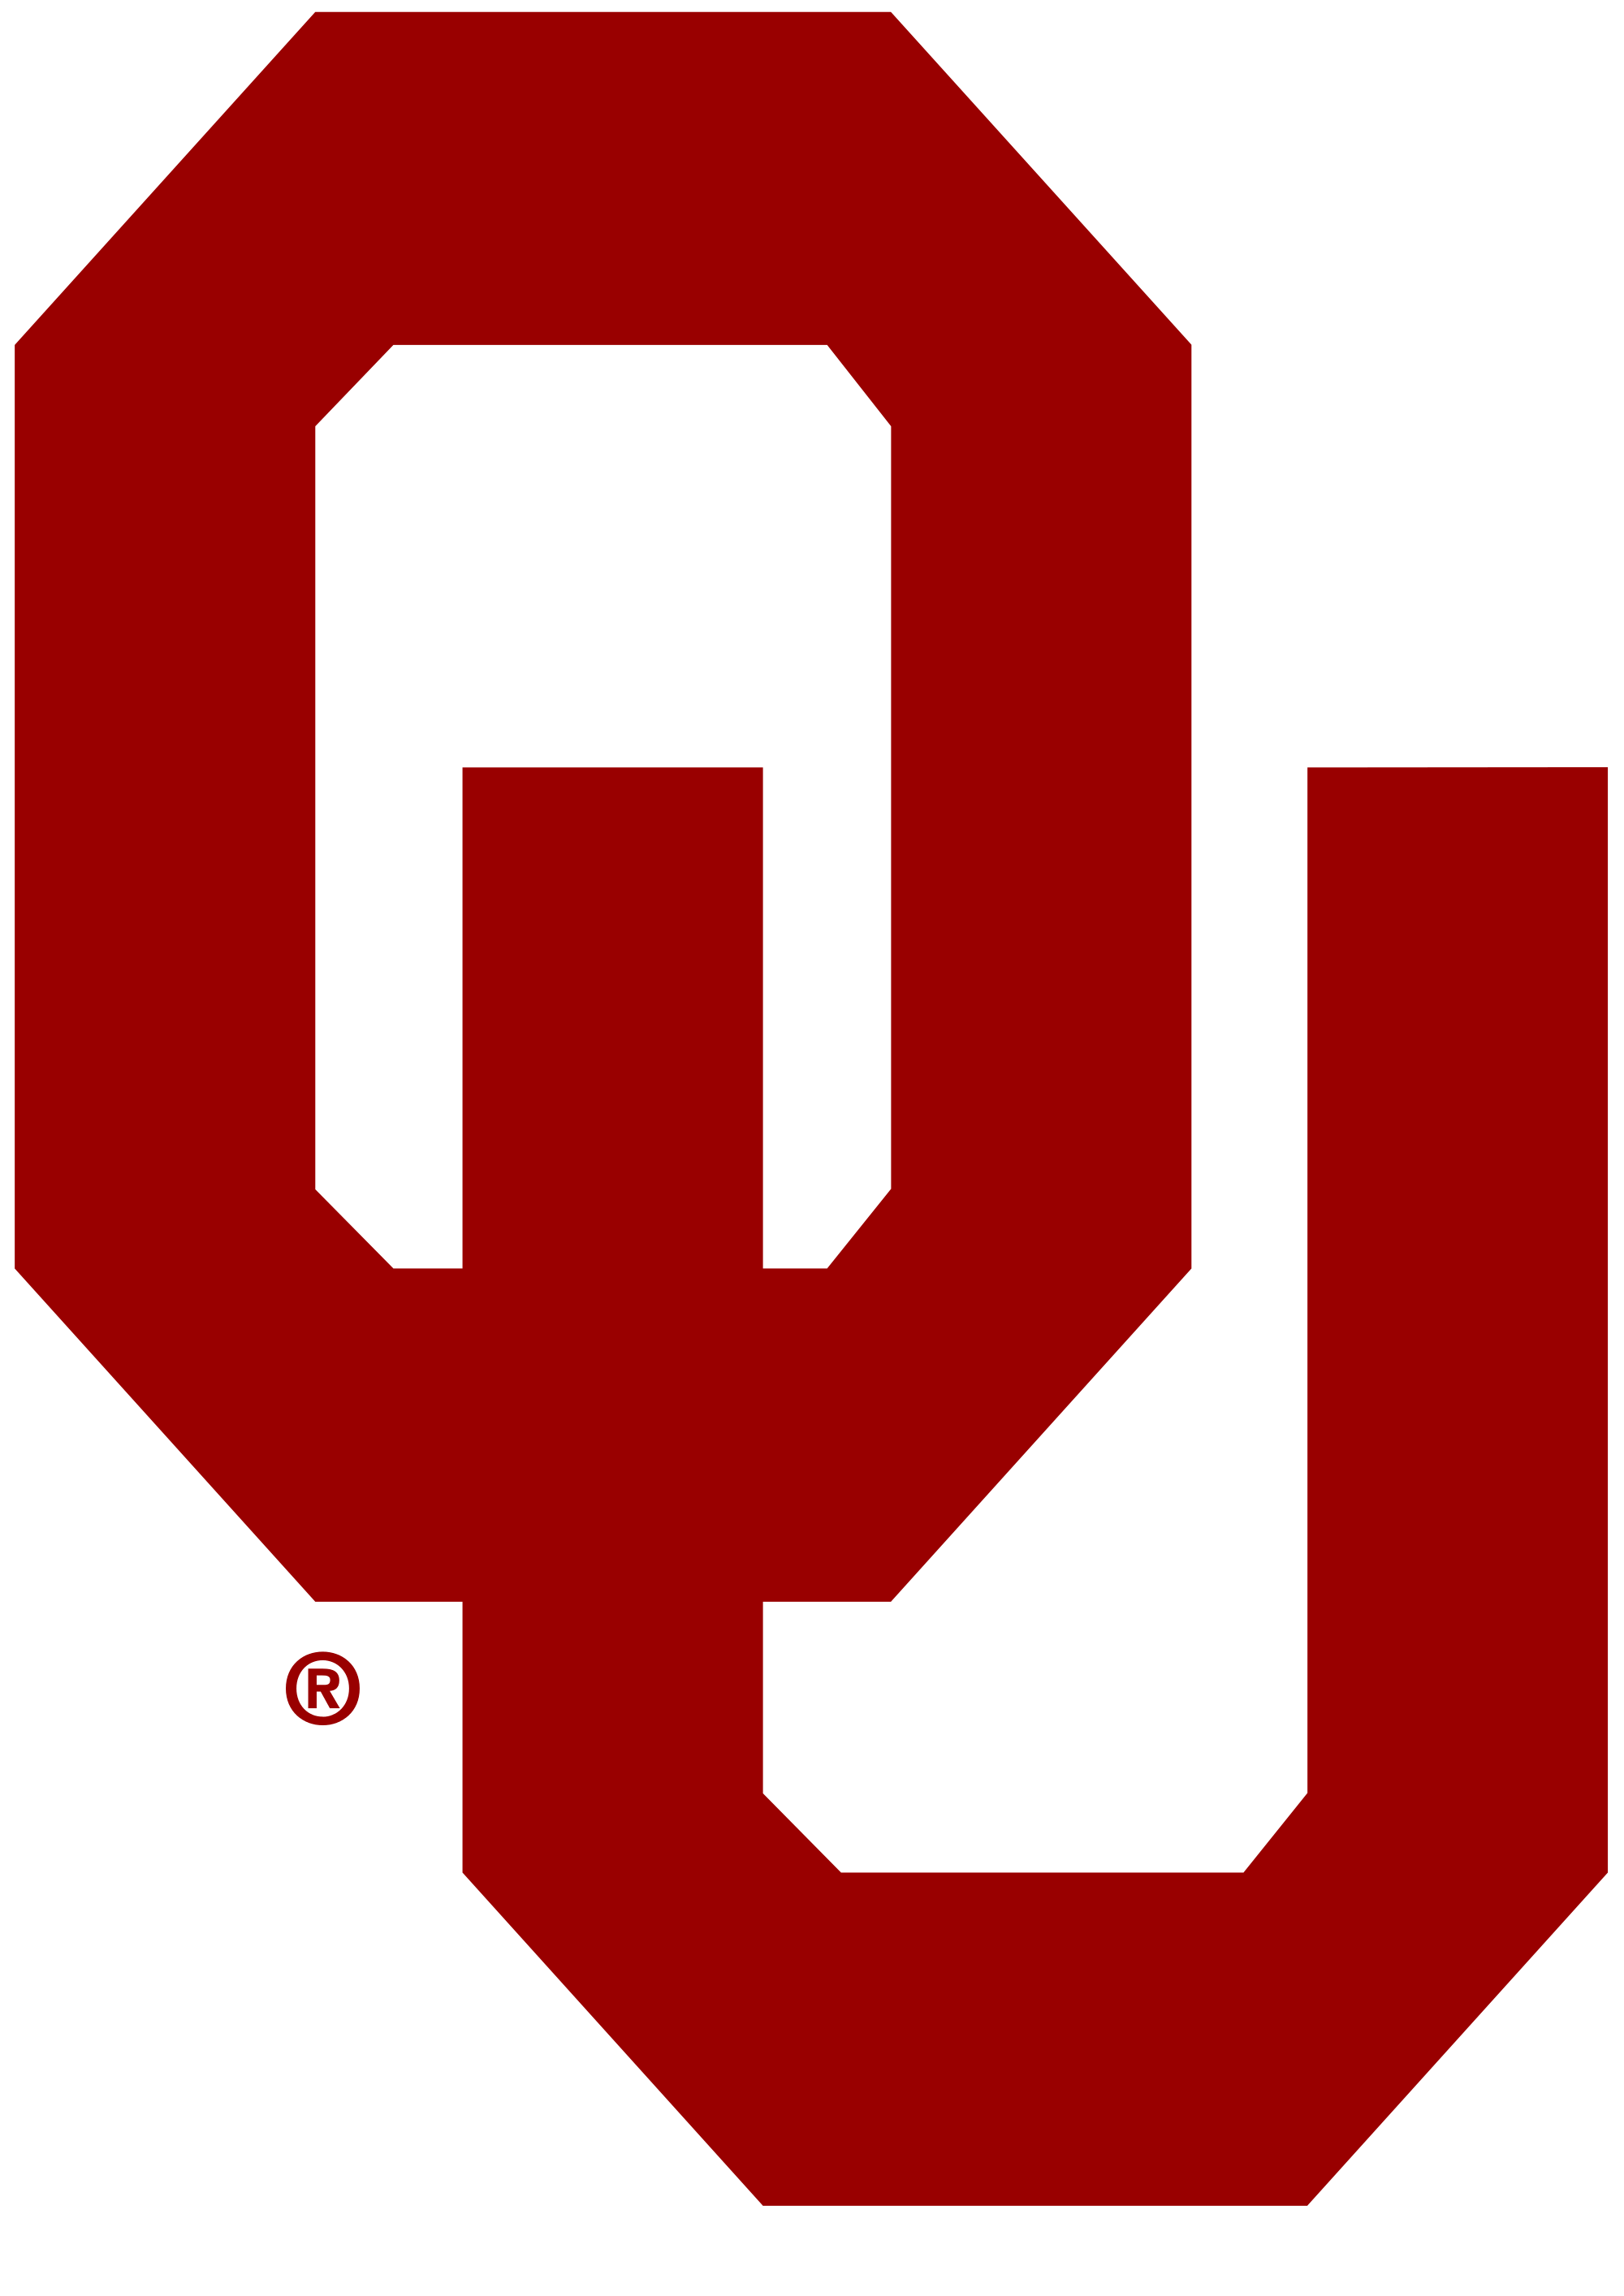 University Of Oklahoma PNG - 77439